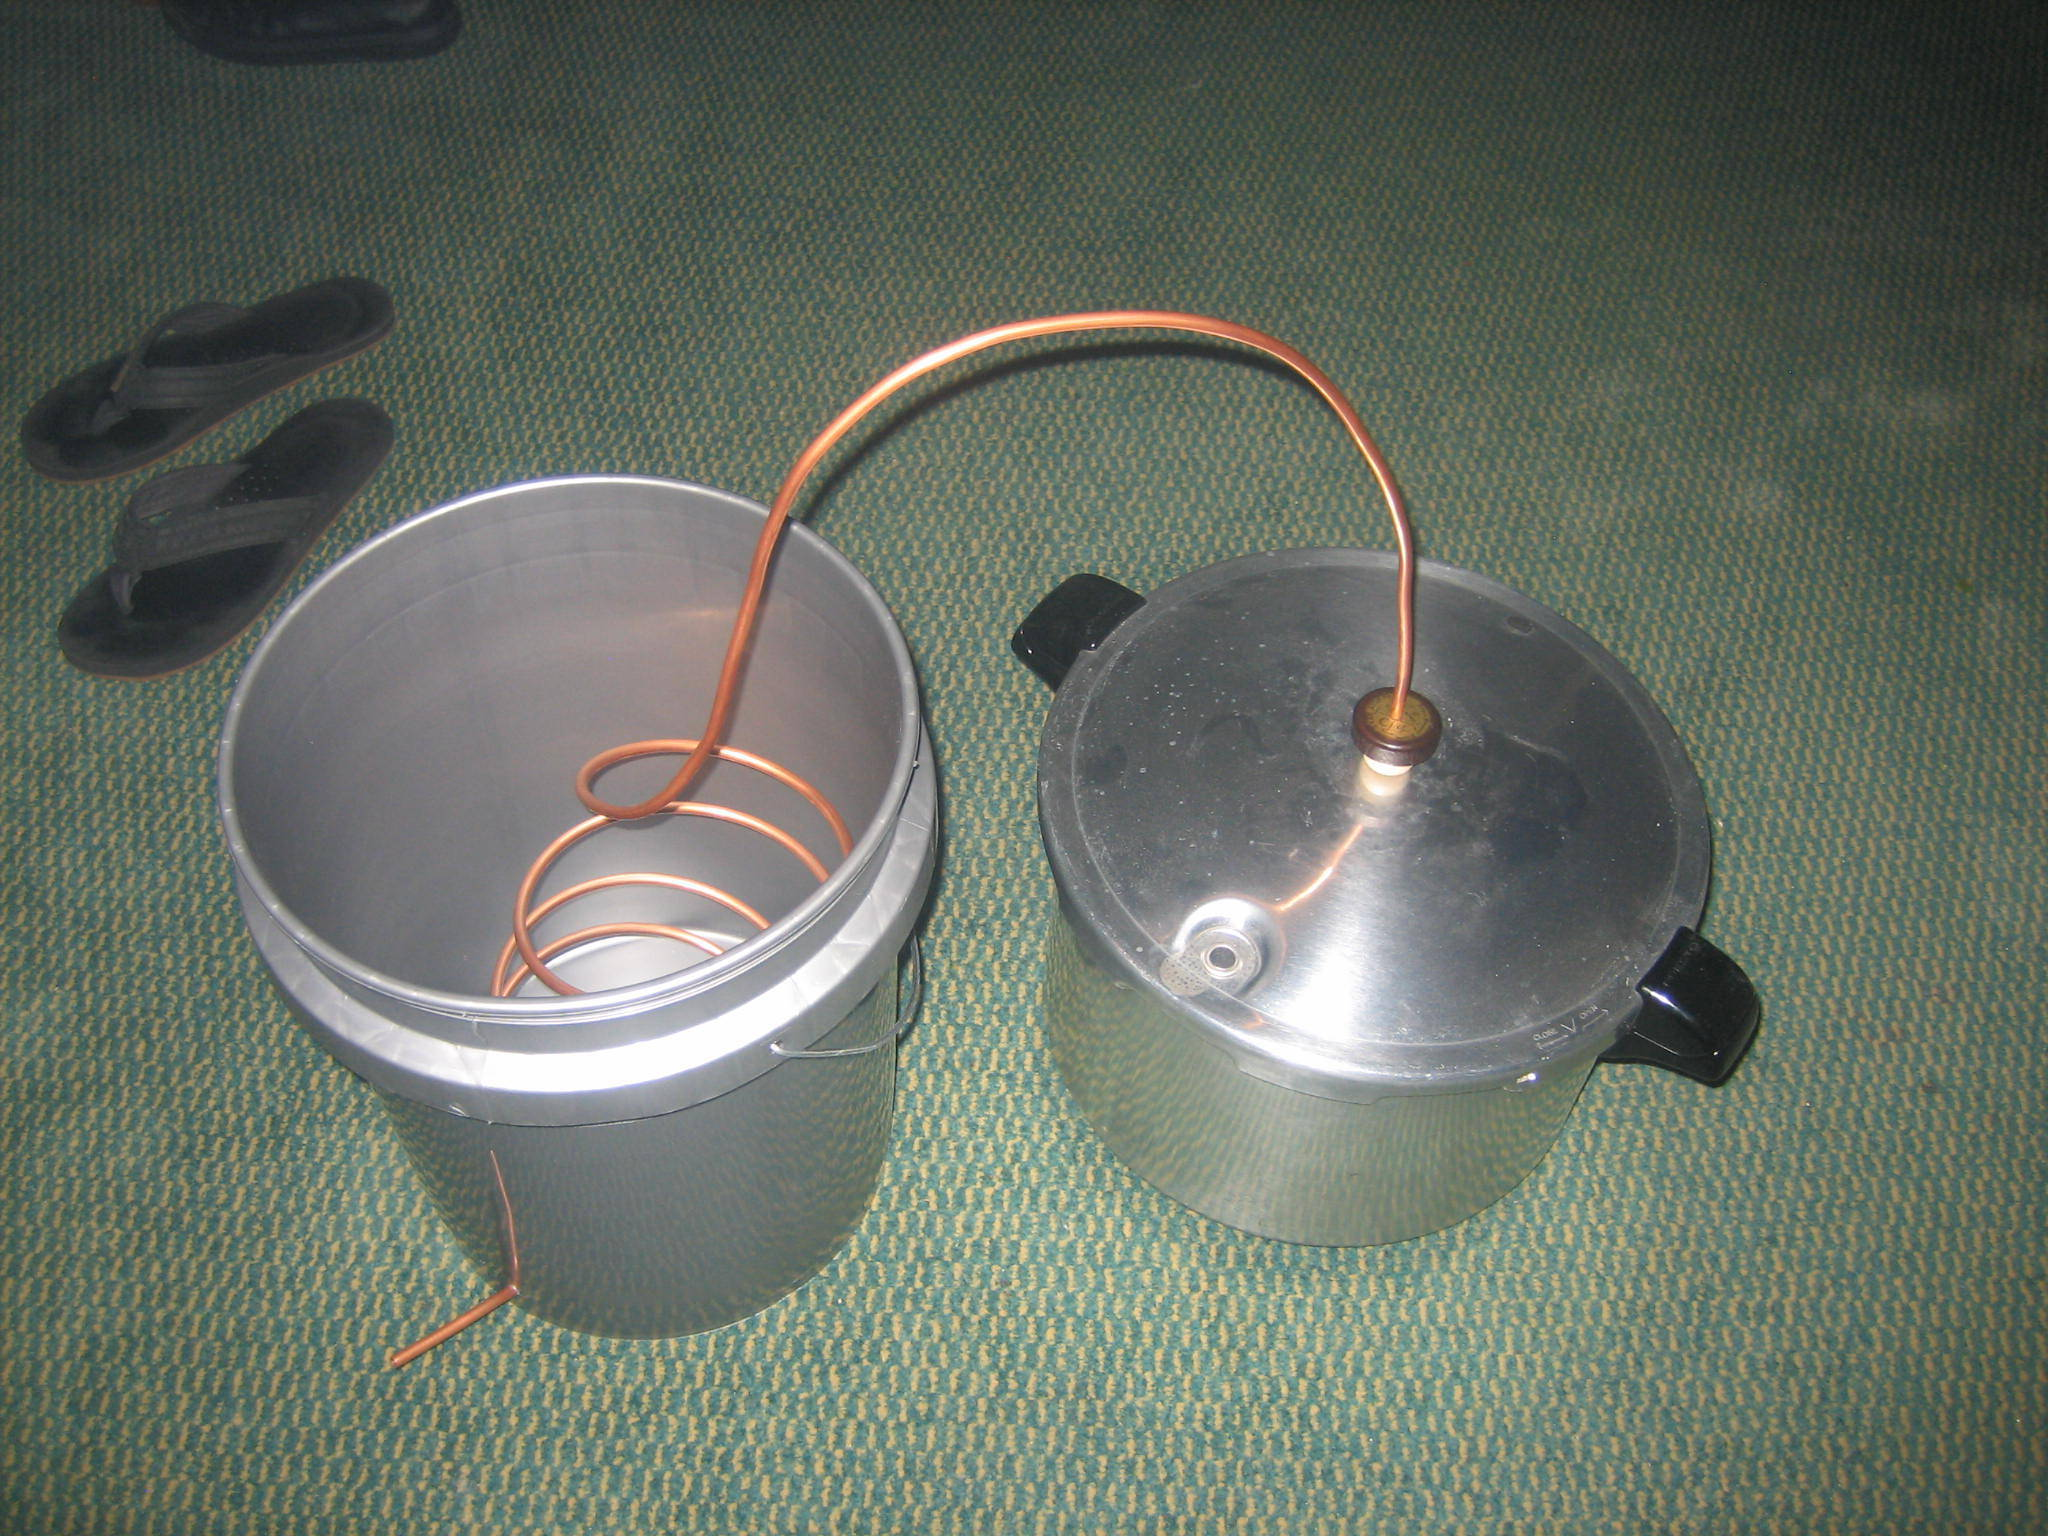 Homemade moonshine still pressure cooker